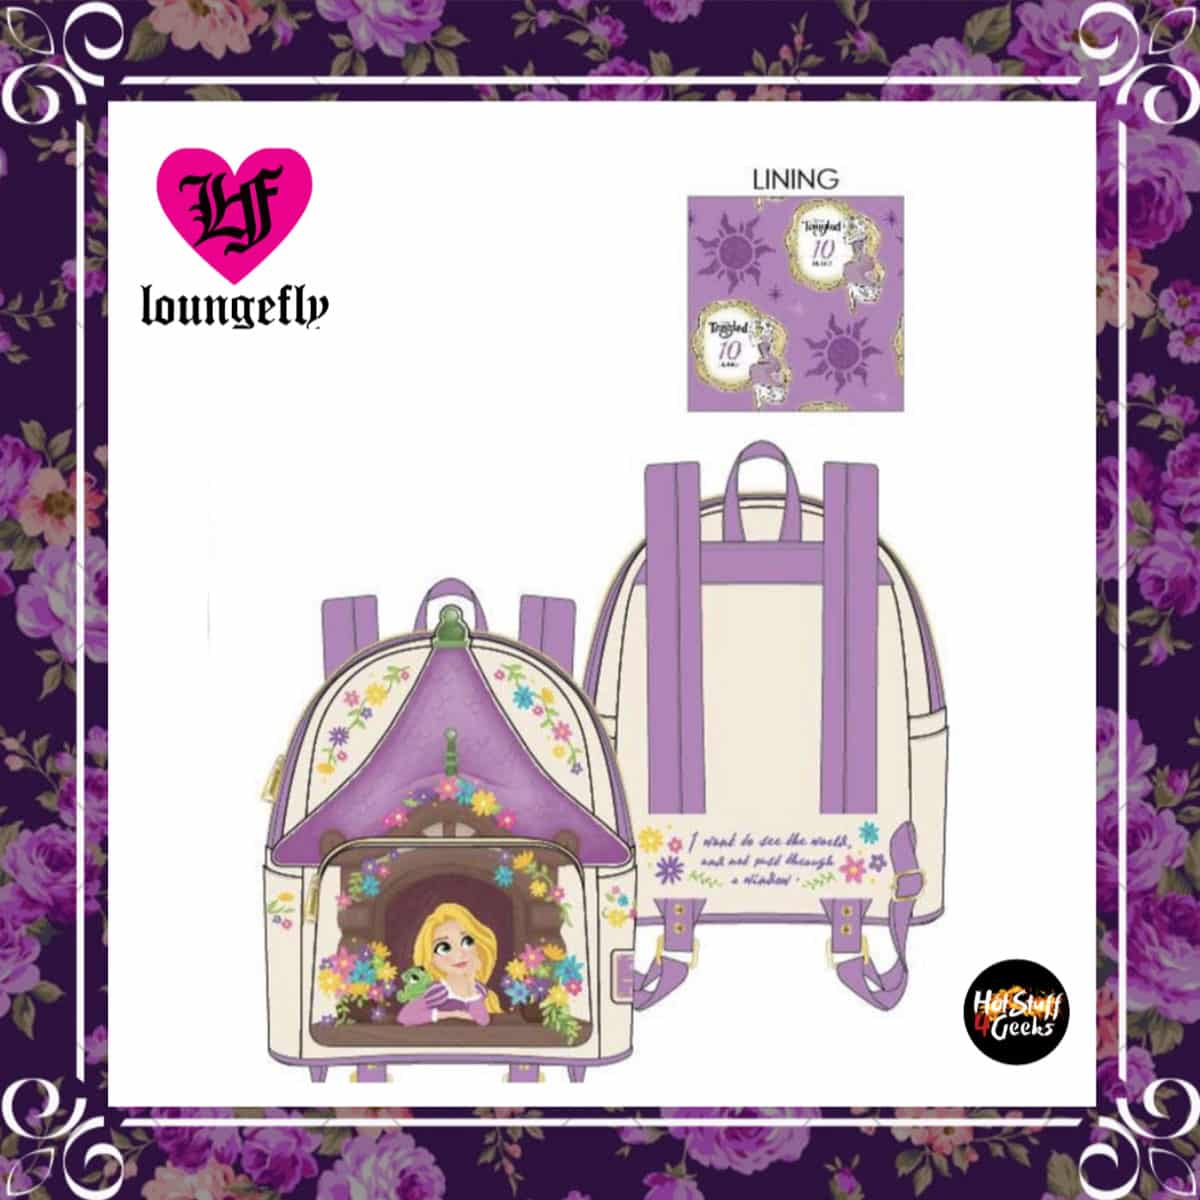 2020 New Loungefly Tangled Tower Scene Mini Backpack Hot Stuff 4 Geeks